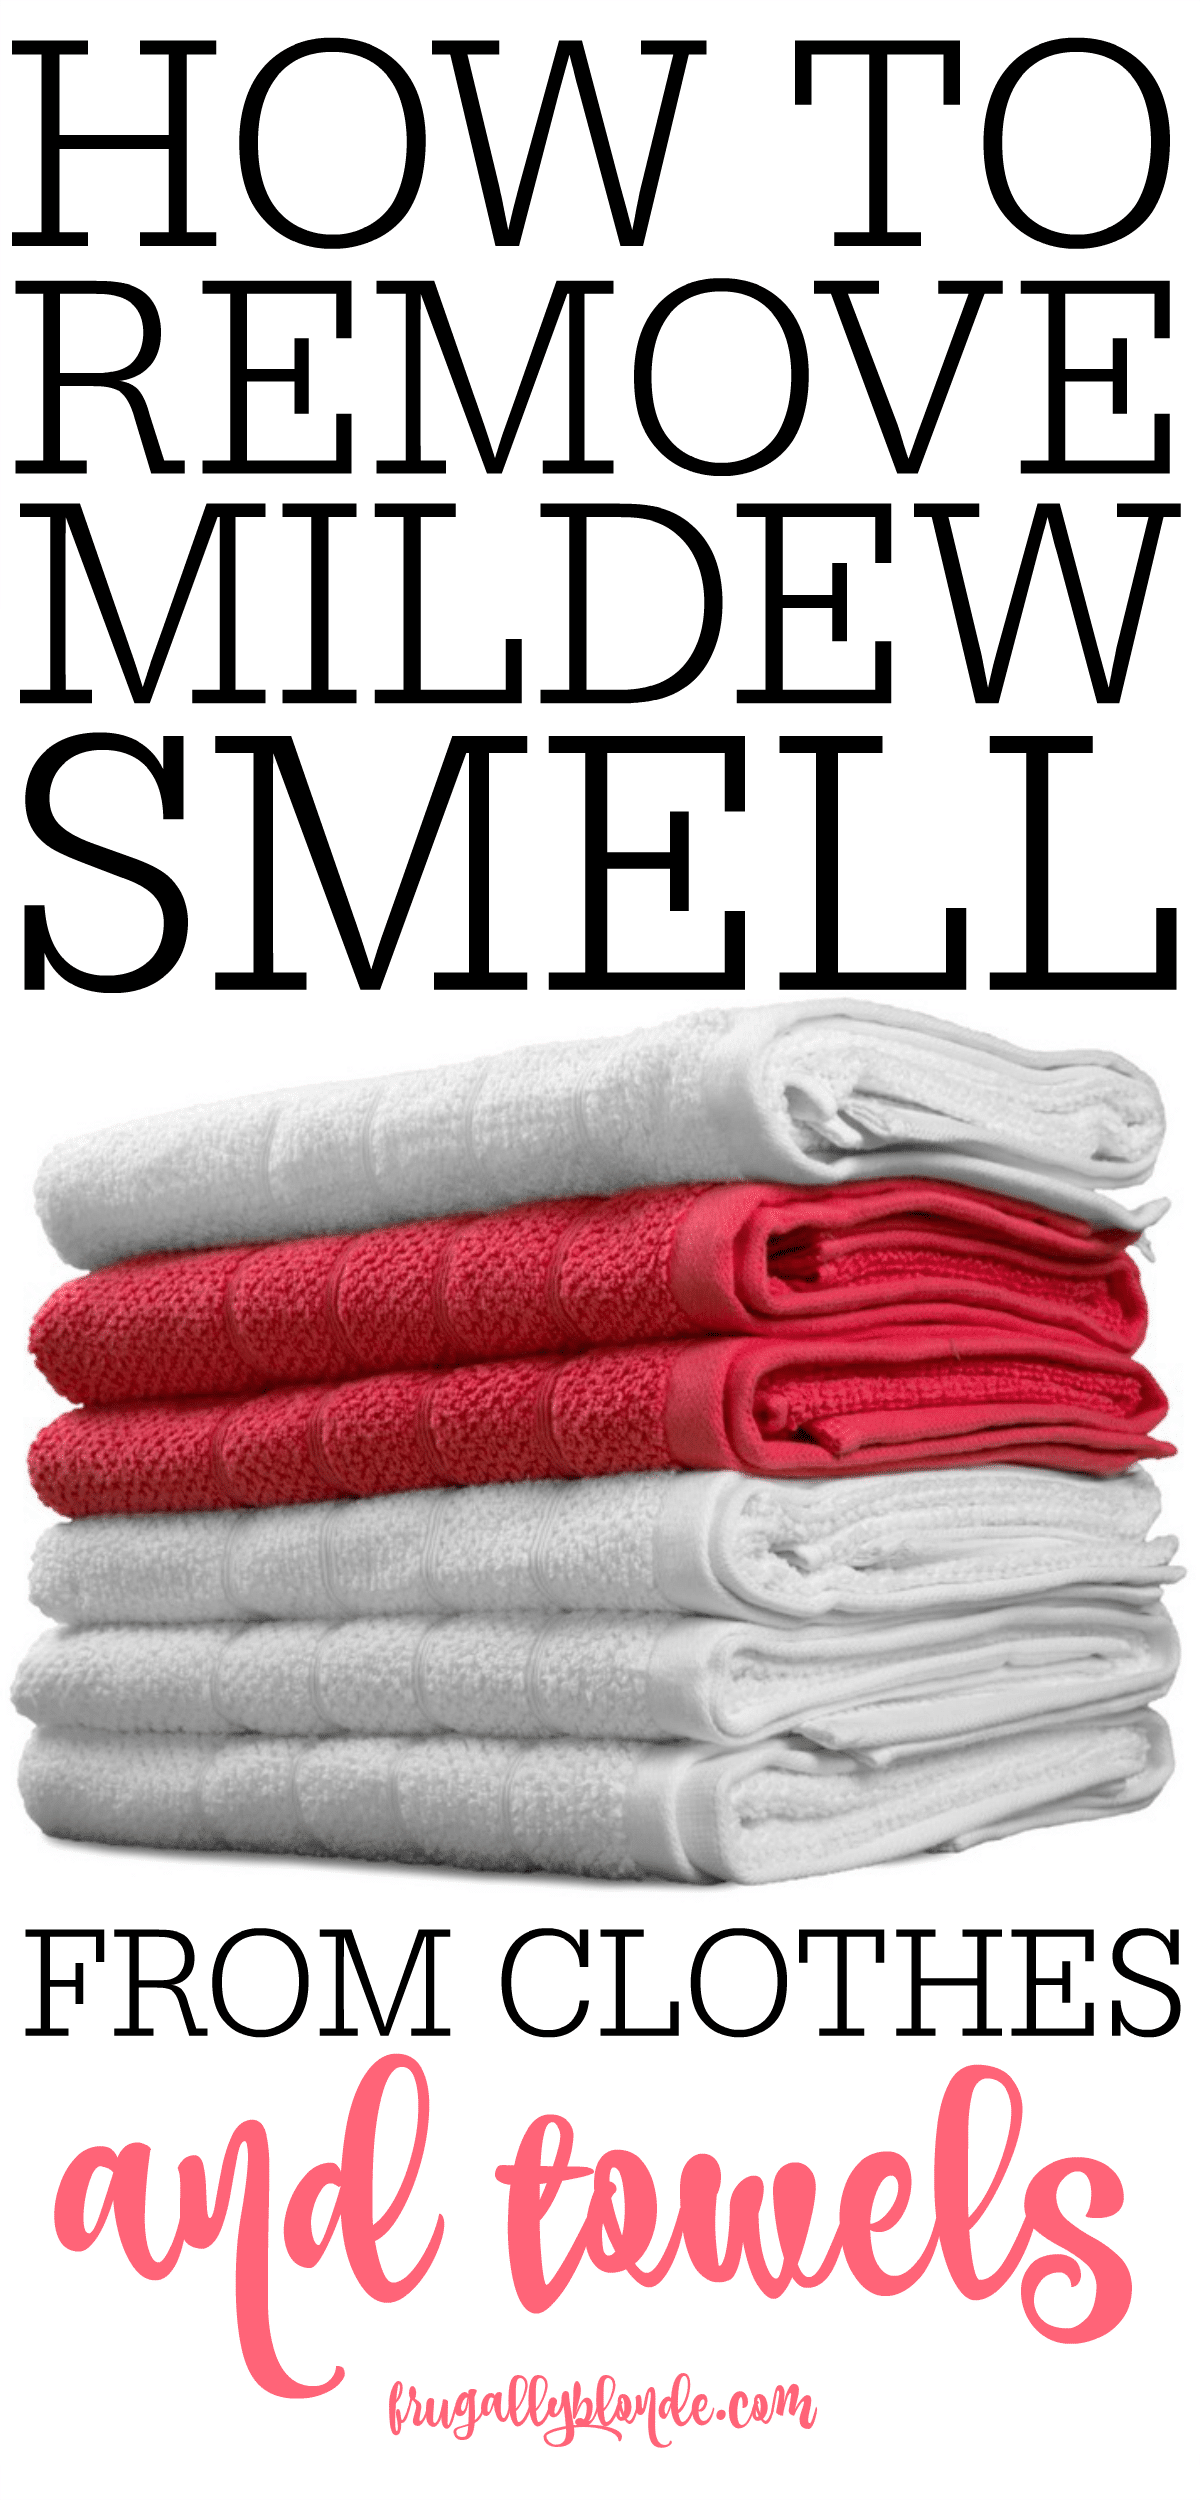 Remove Mildew Smell >> How To Remove Mildew Smell From Clothes And Towels Handy